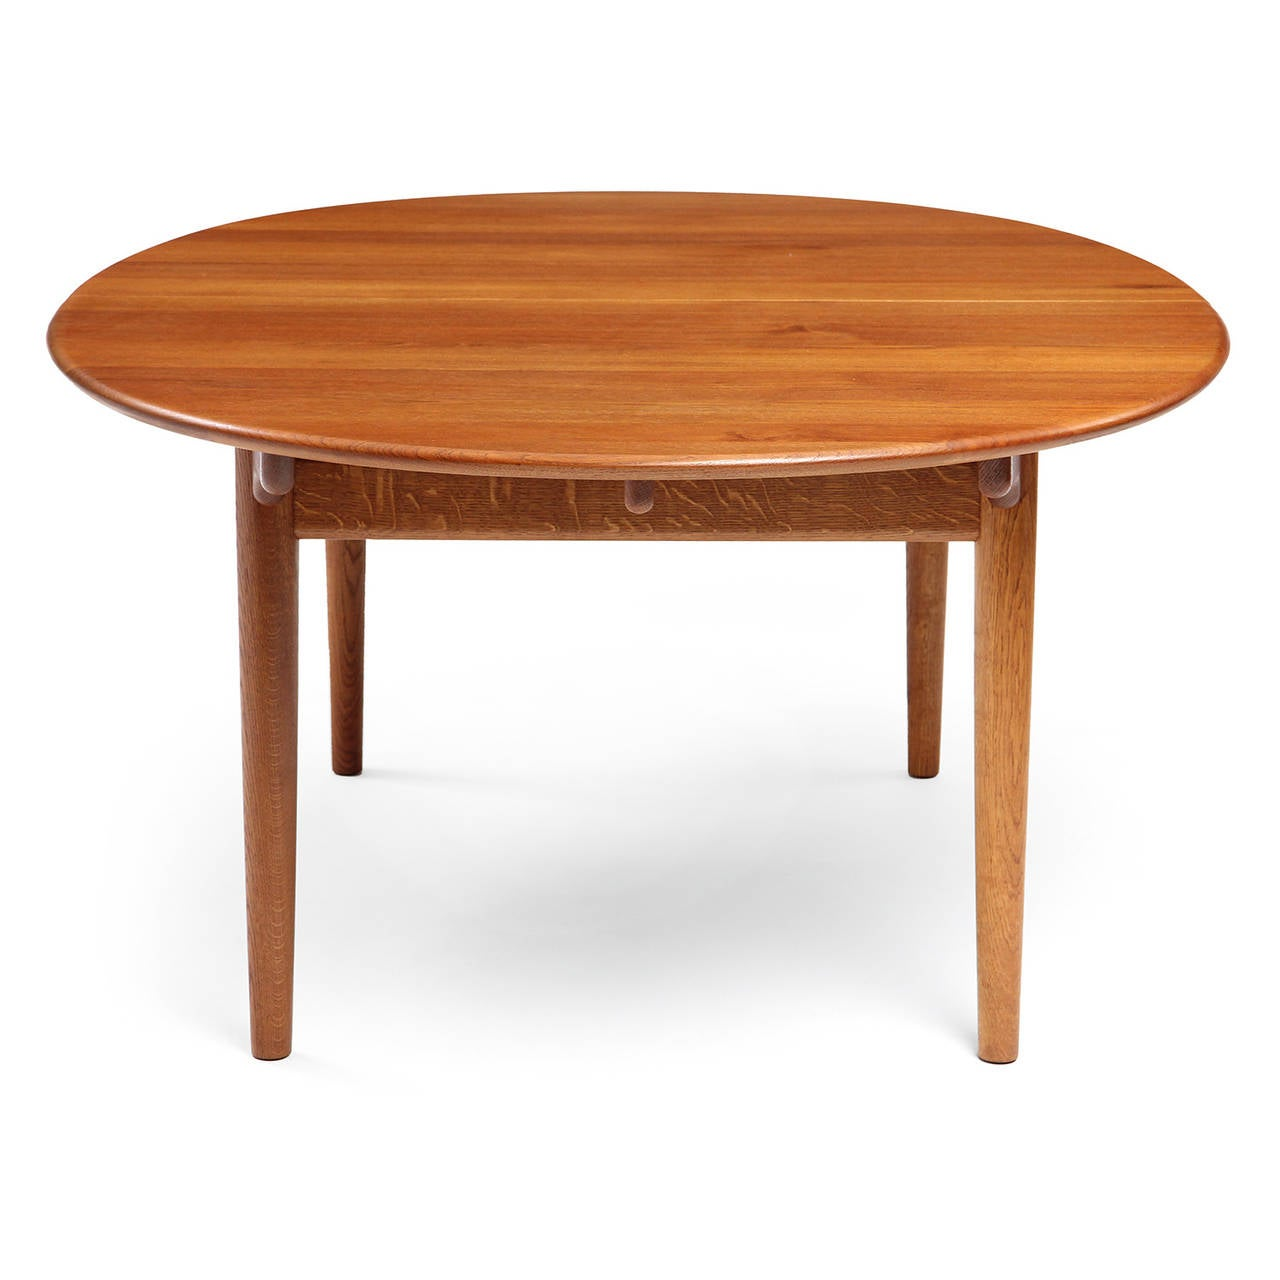 Oval Table by Hans J. Wegner In Excellent Condition For Sale In New York, NY